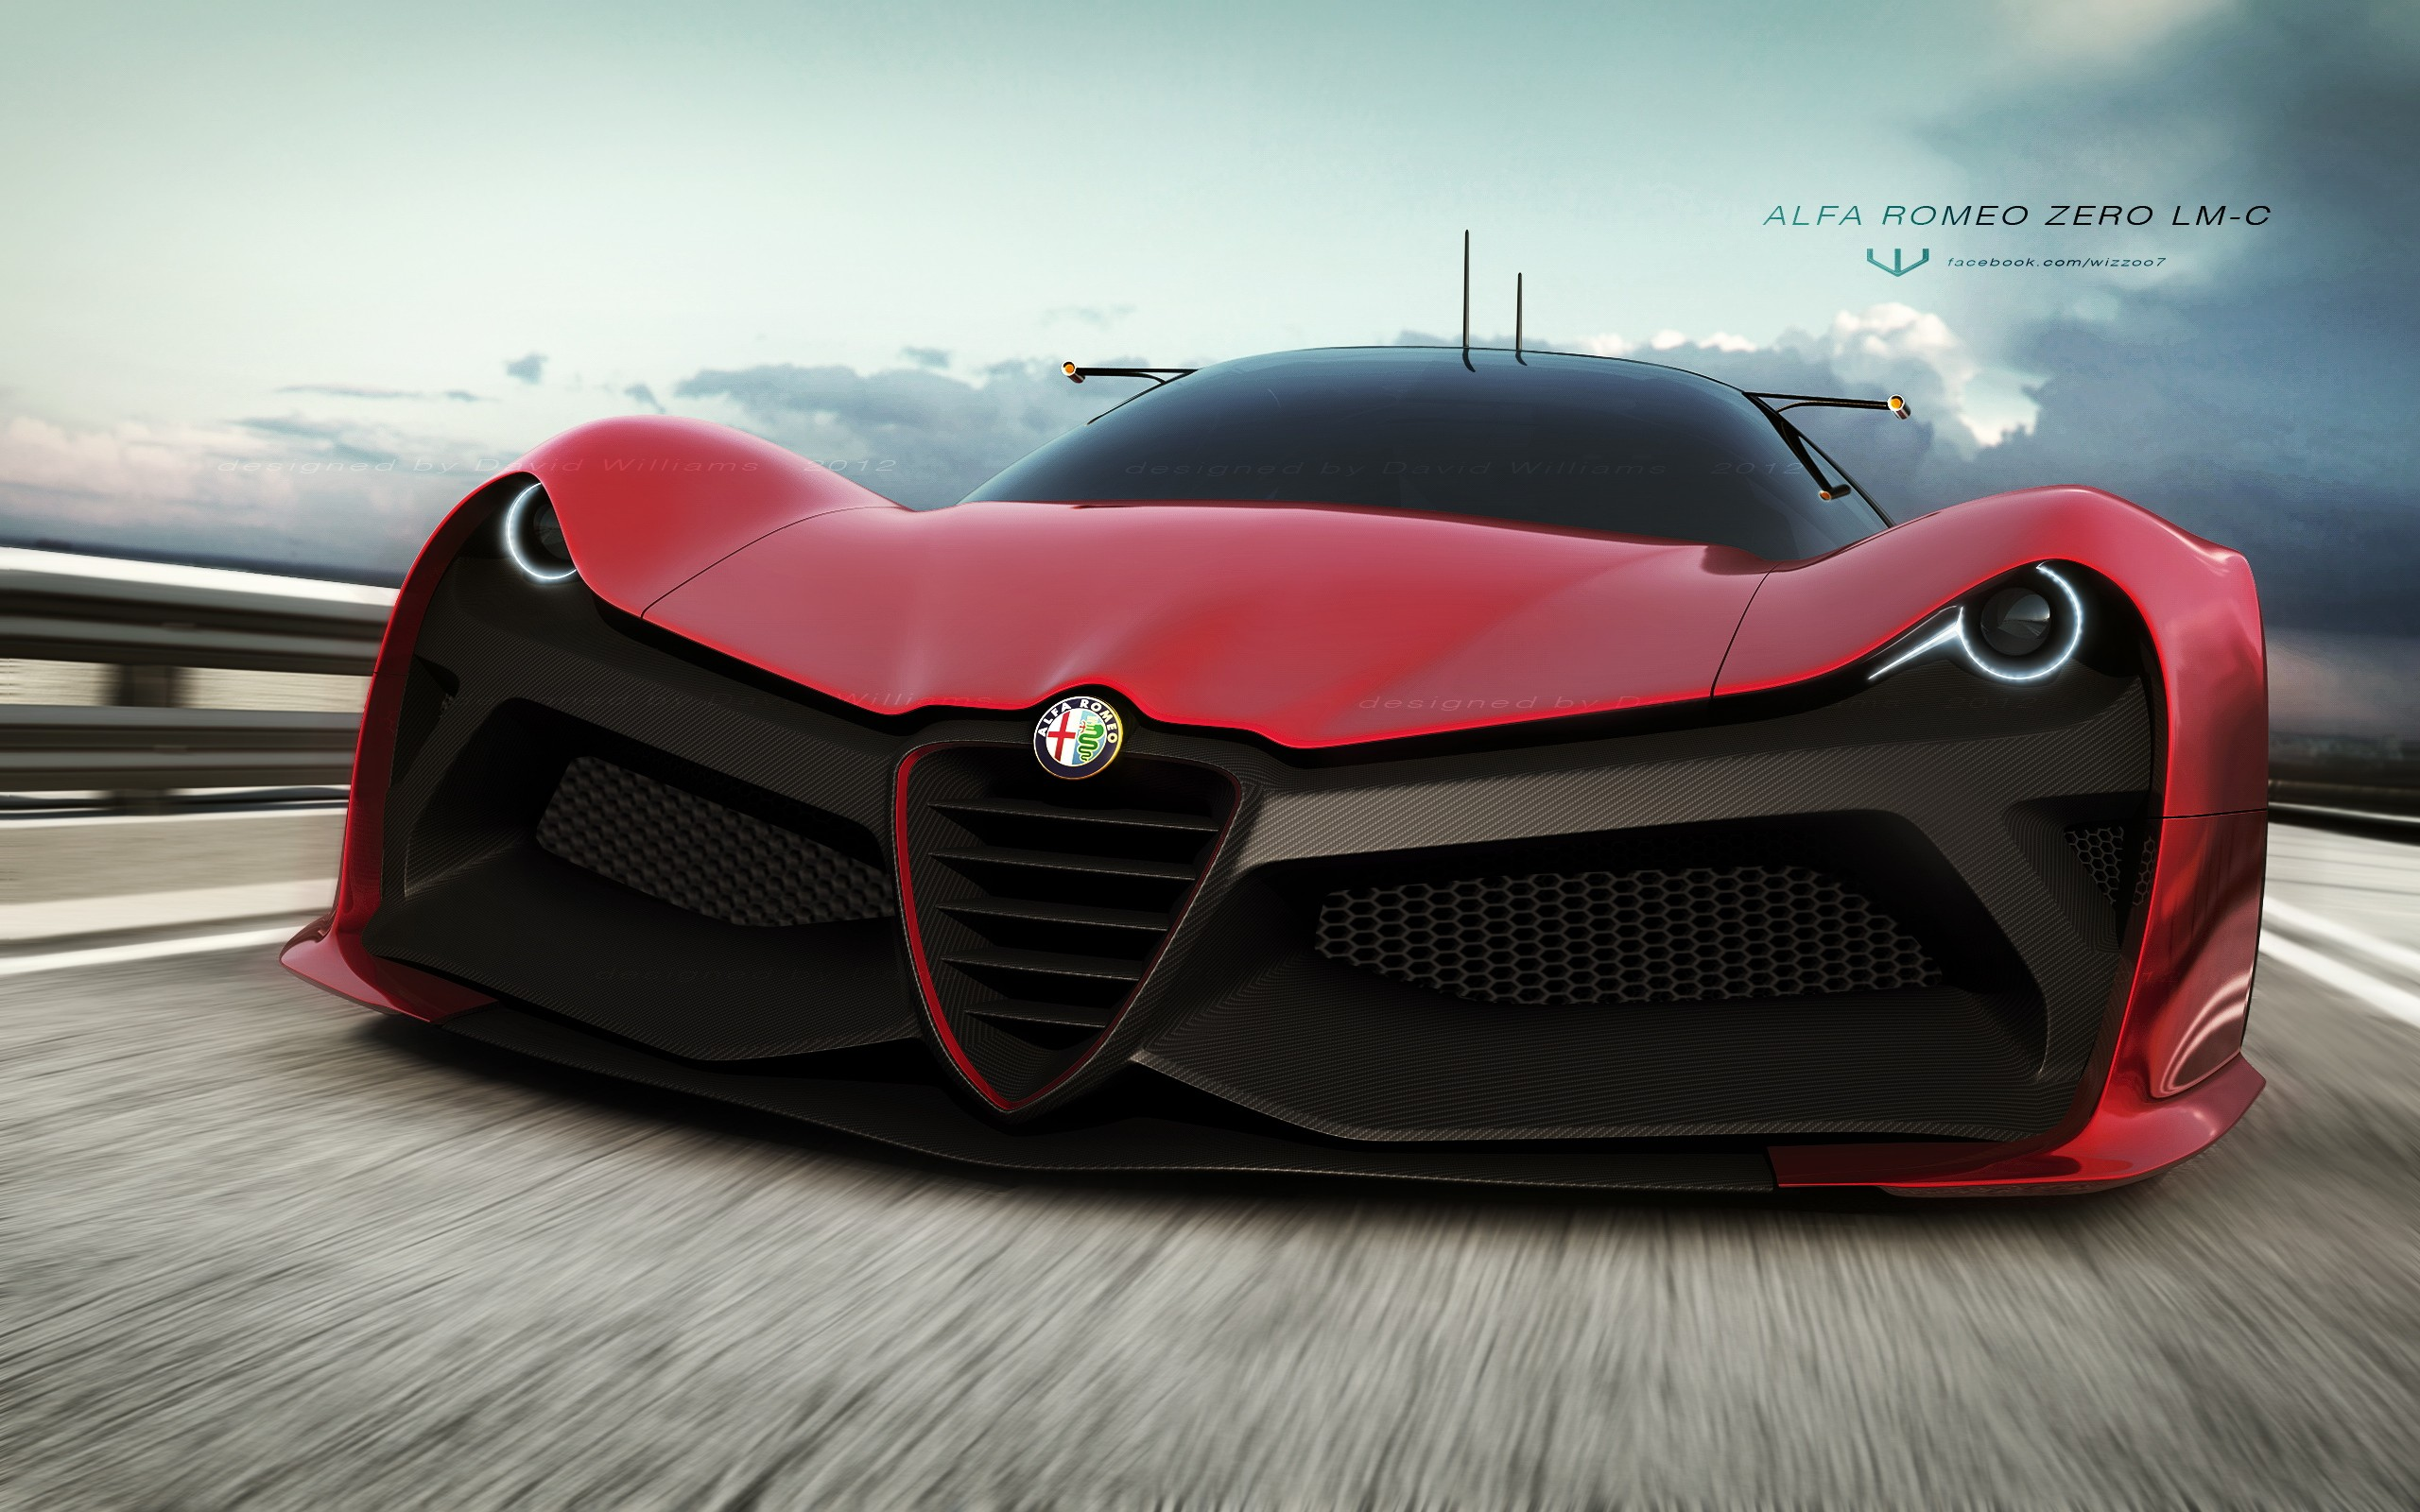 1 Alfa Romeo Zero Lm C Hd Wallpapers Background Images